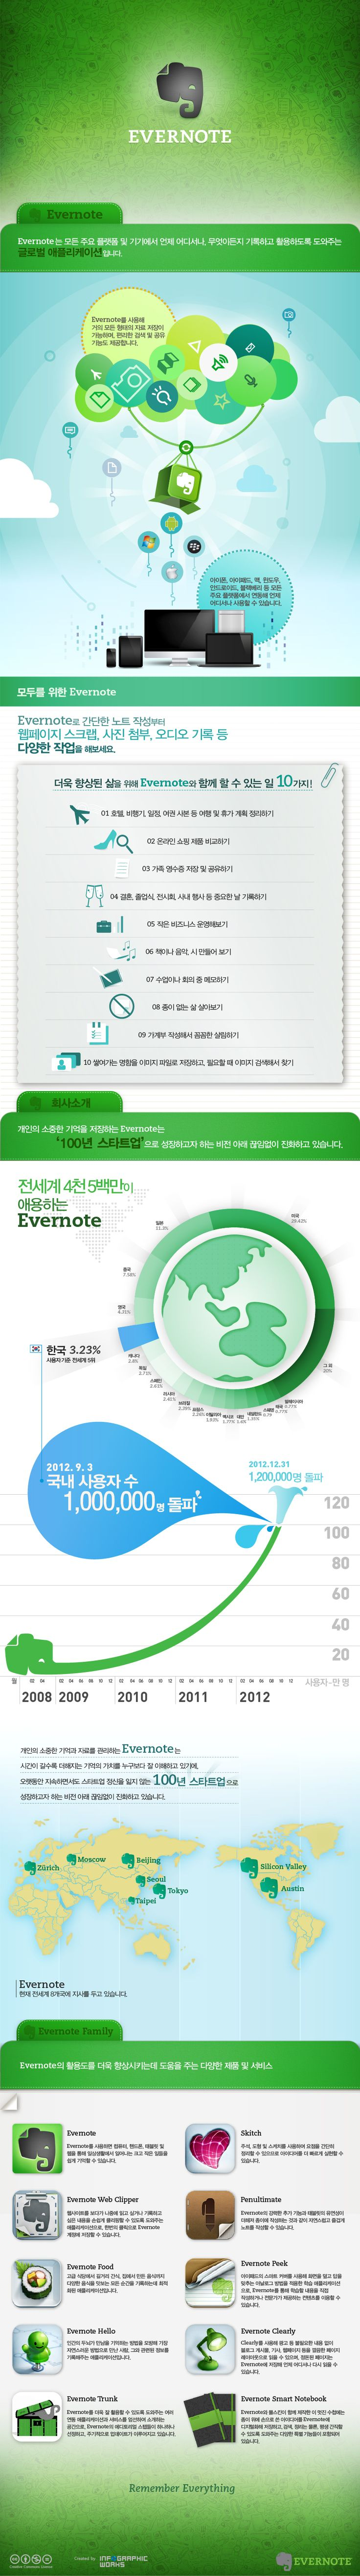 Evernote in Korea, Evernote 국내 사용자 수 120만 돌파! | Evernote Corporation